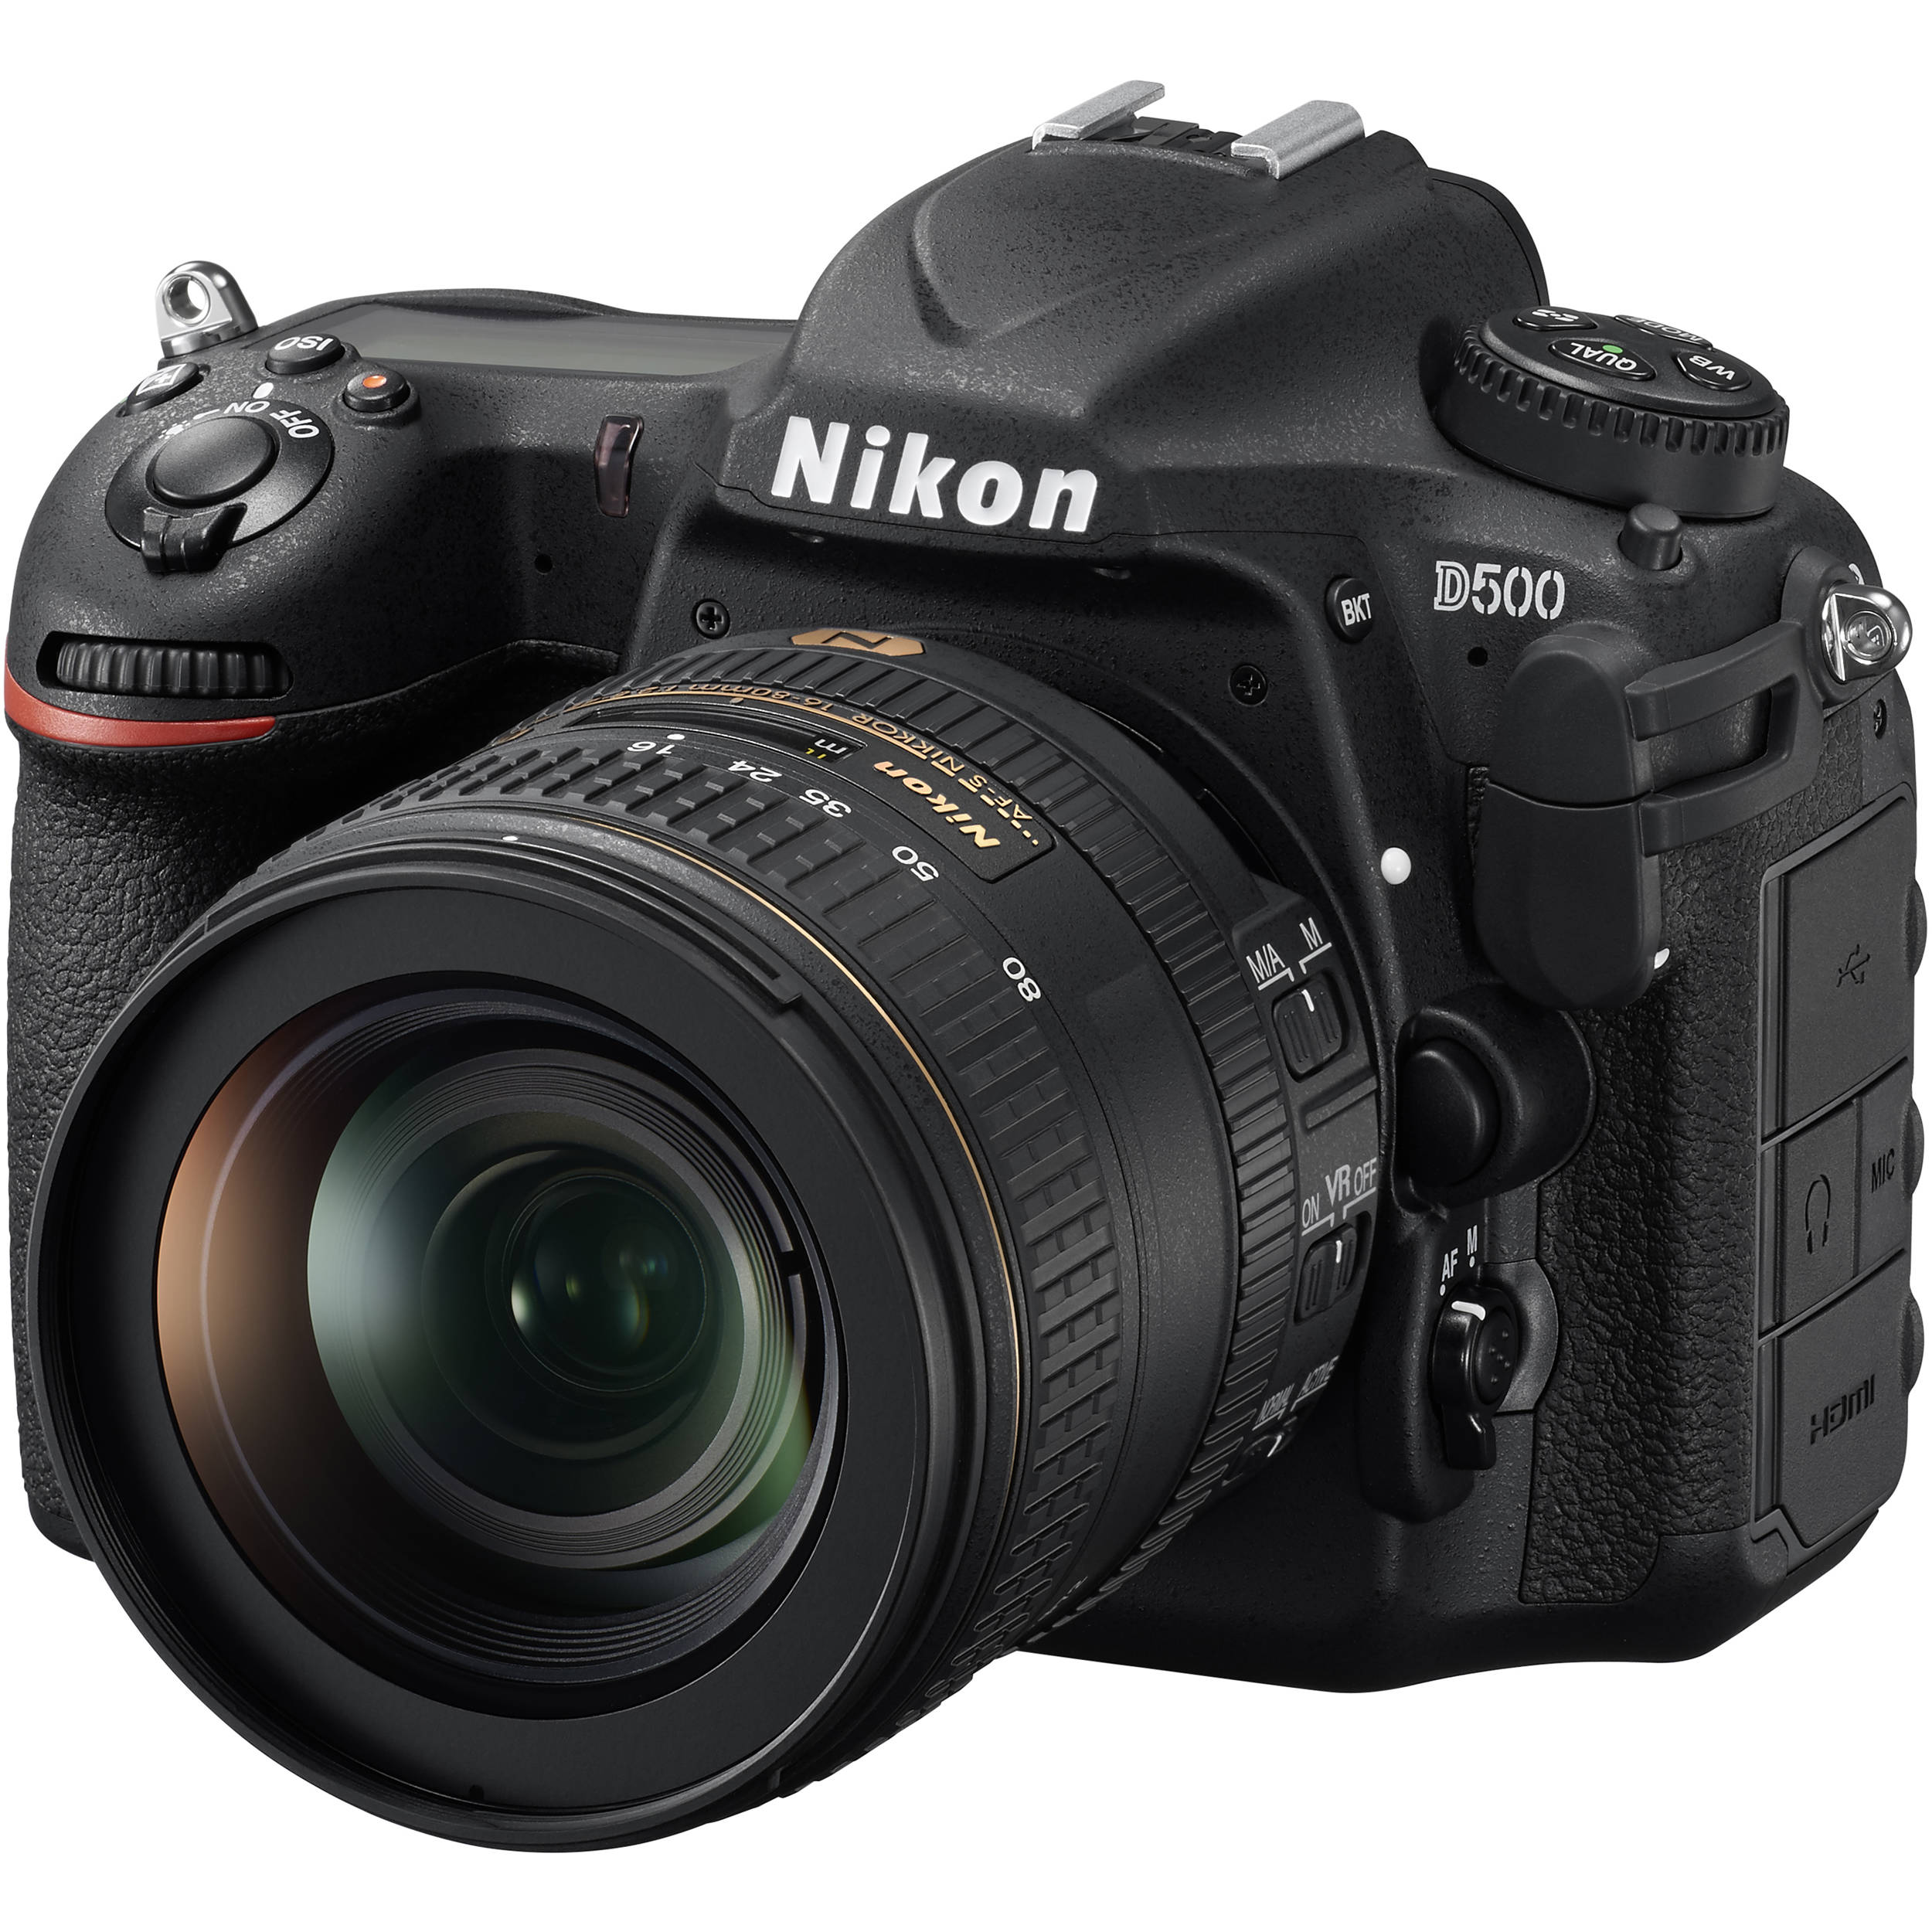 Nikon D500 DSLR Camera with 16-80mm Lens